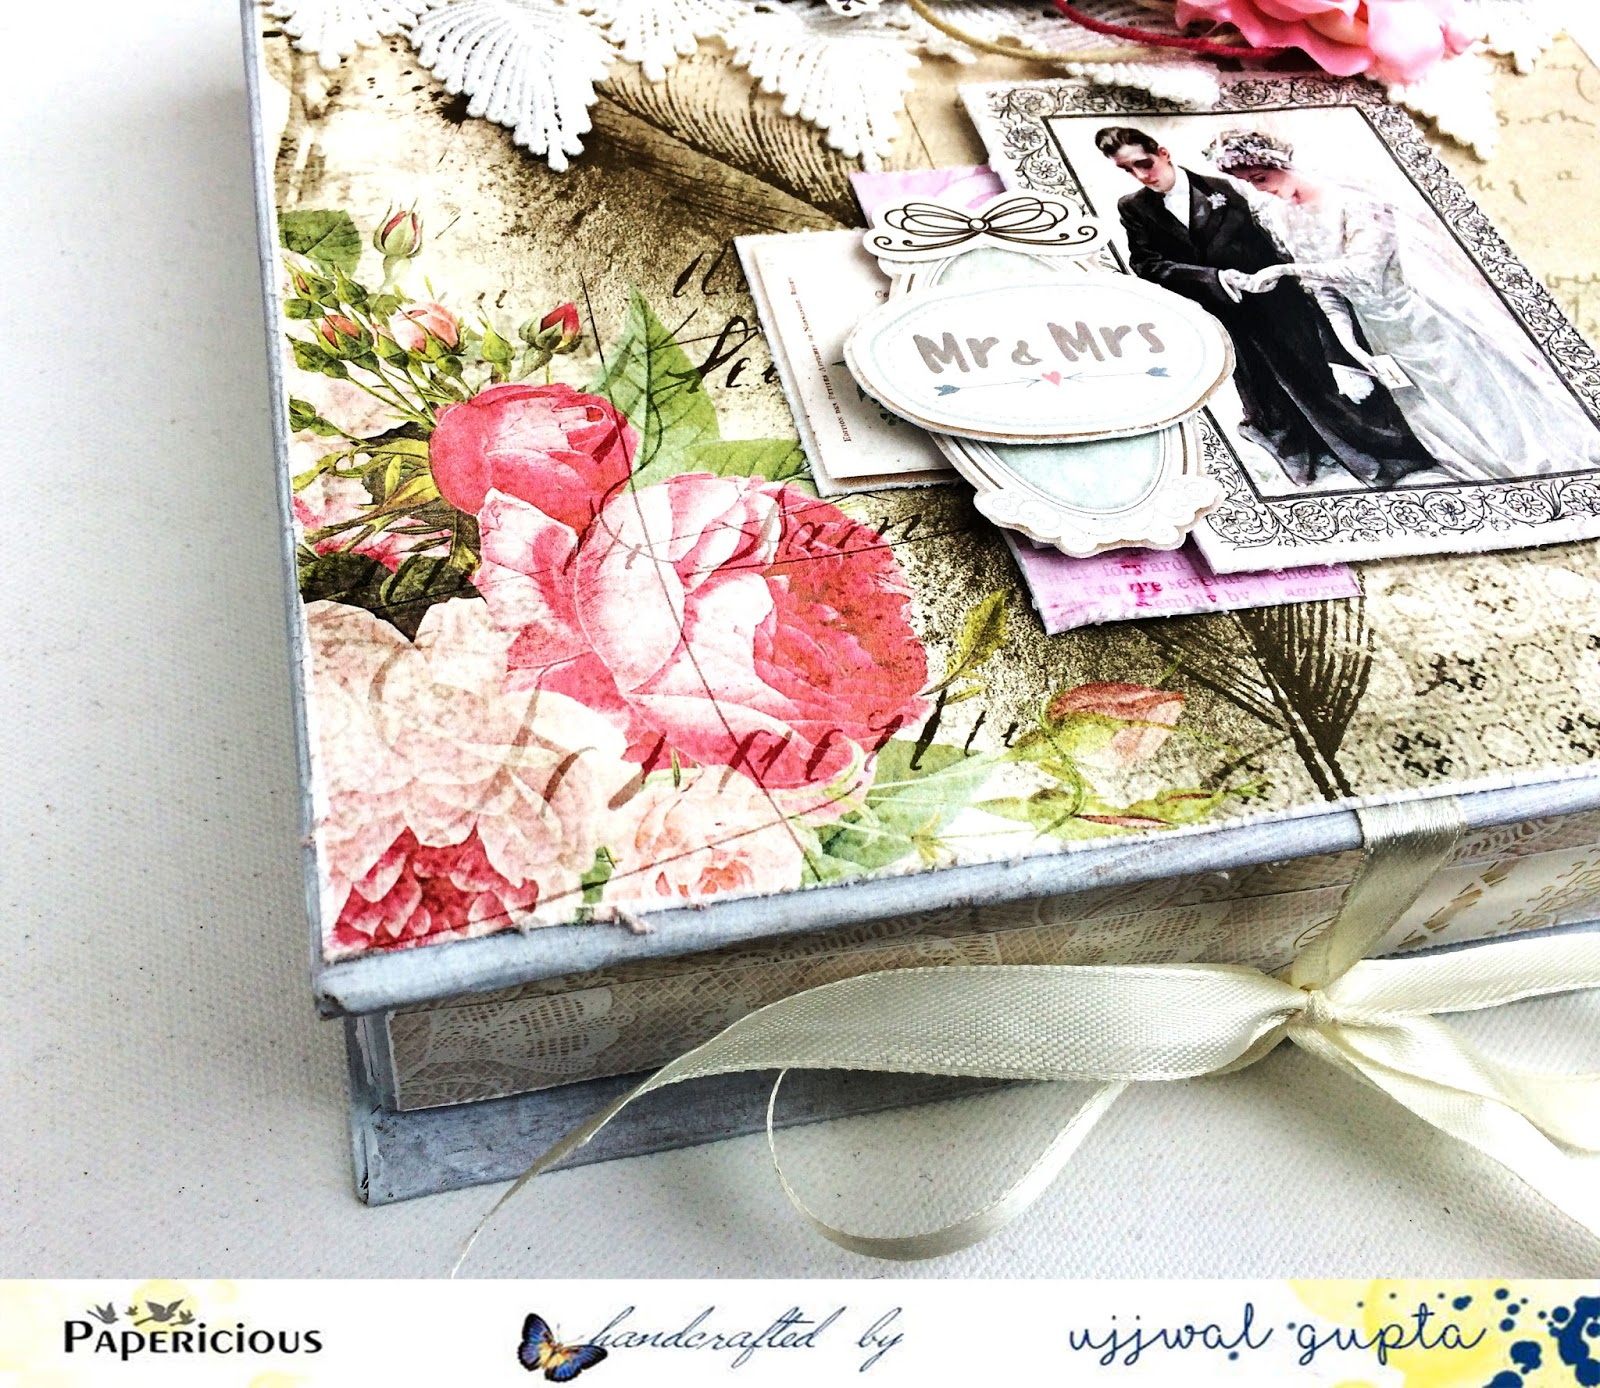 Wedding Gifts For Him And Her India : Wedding gift box for him & her! Papericious